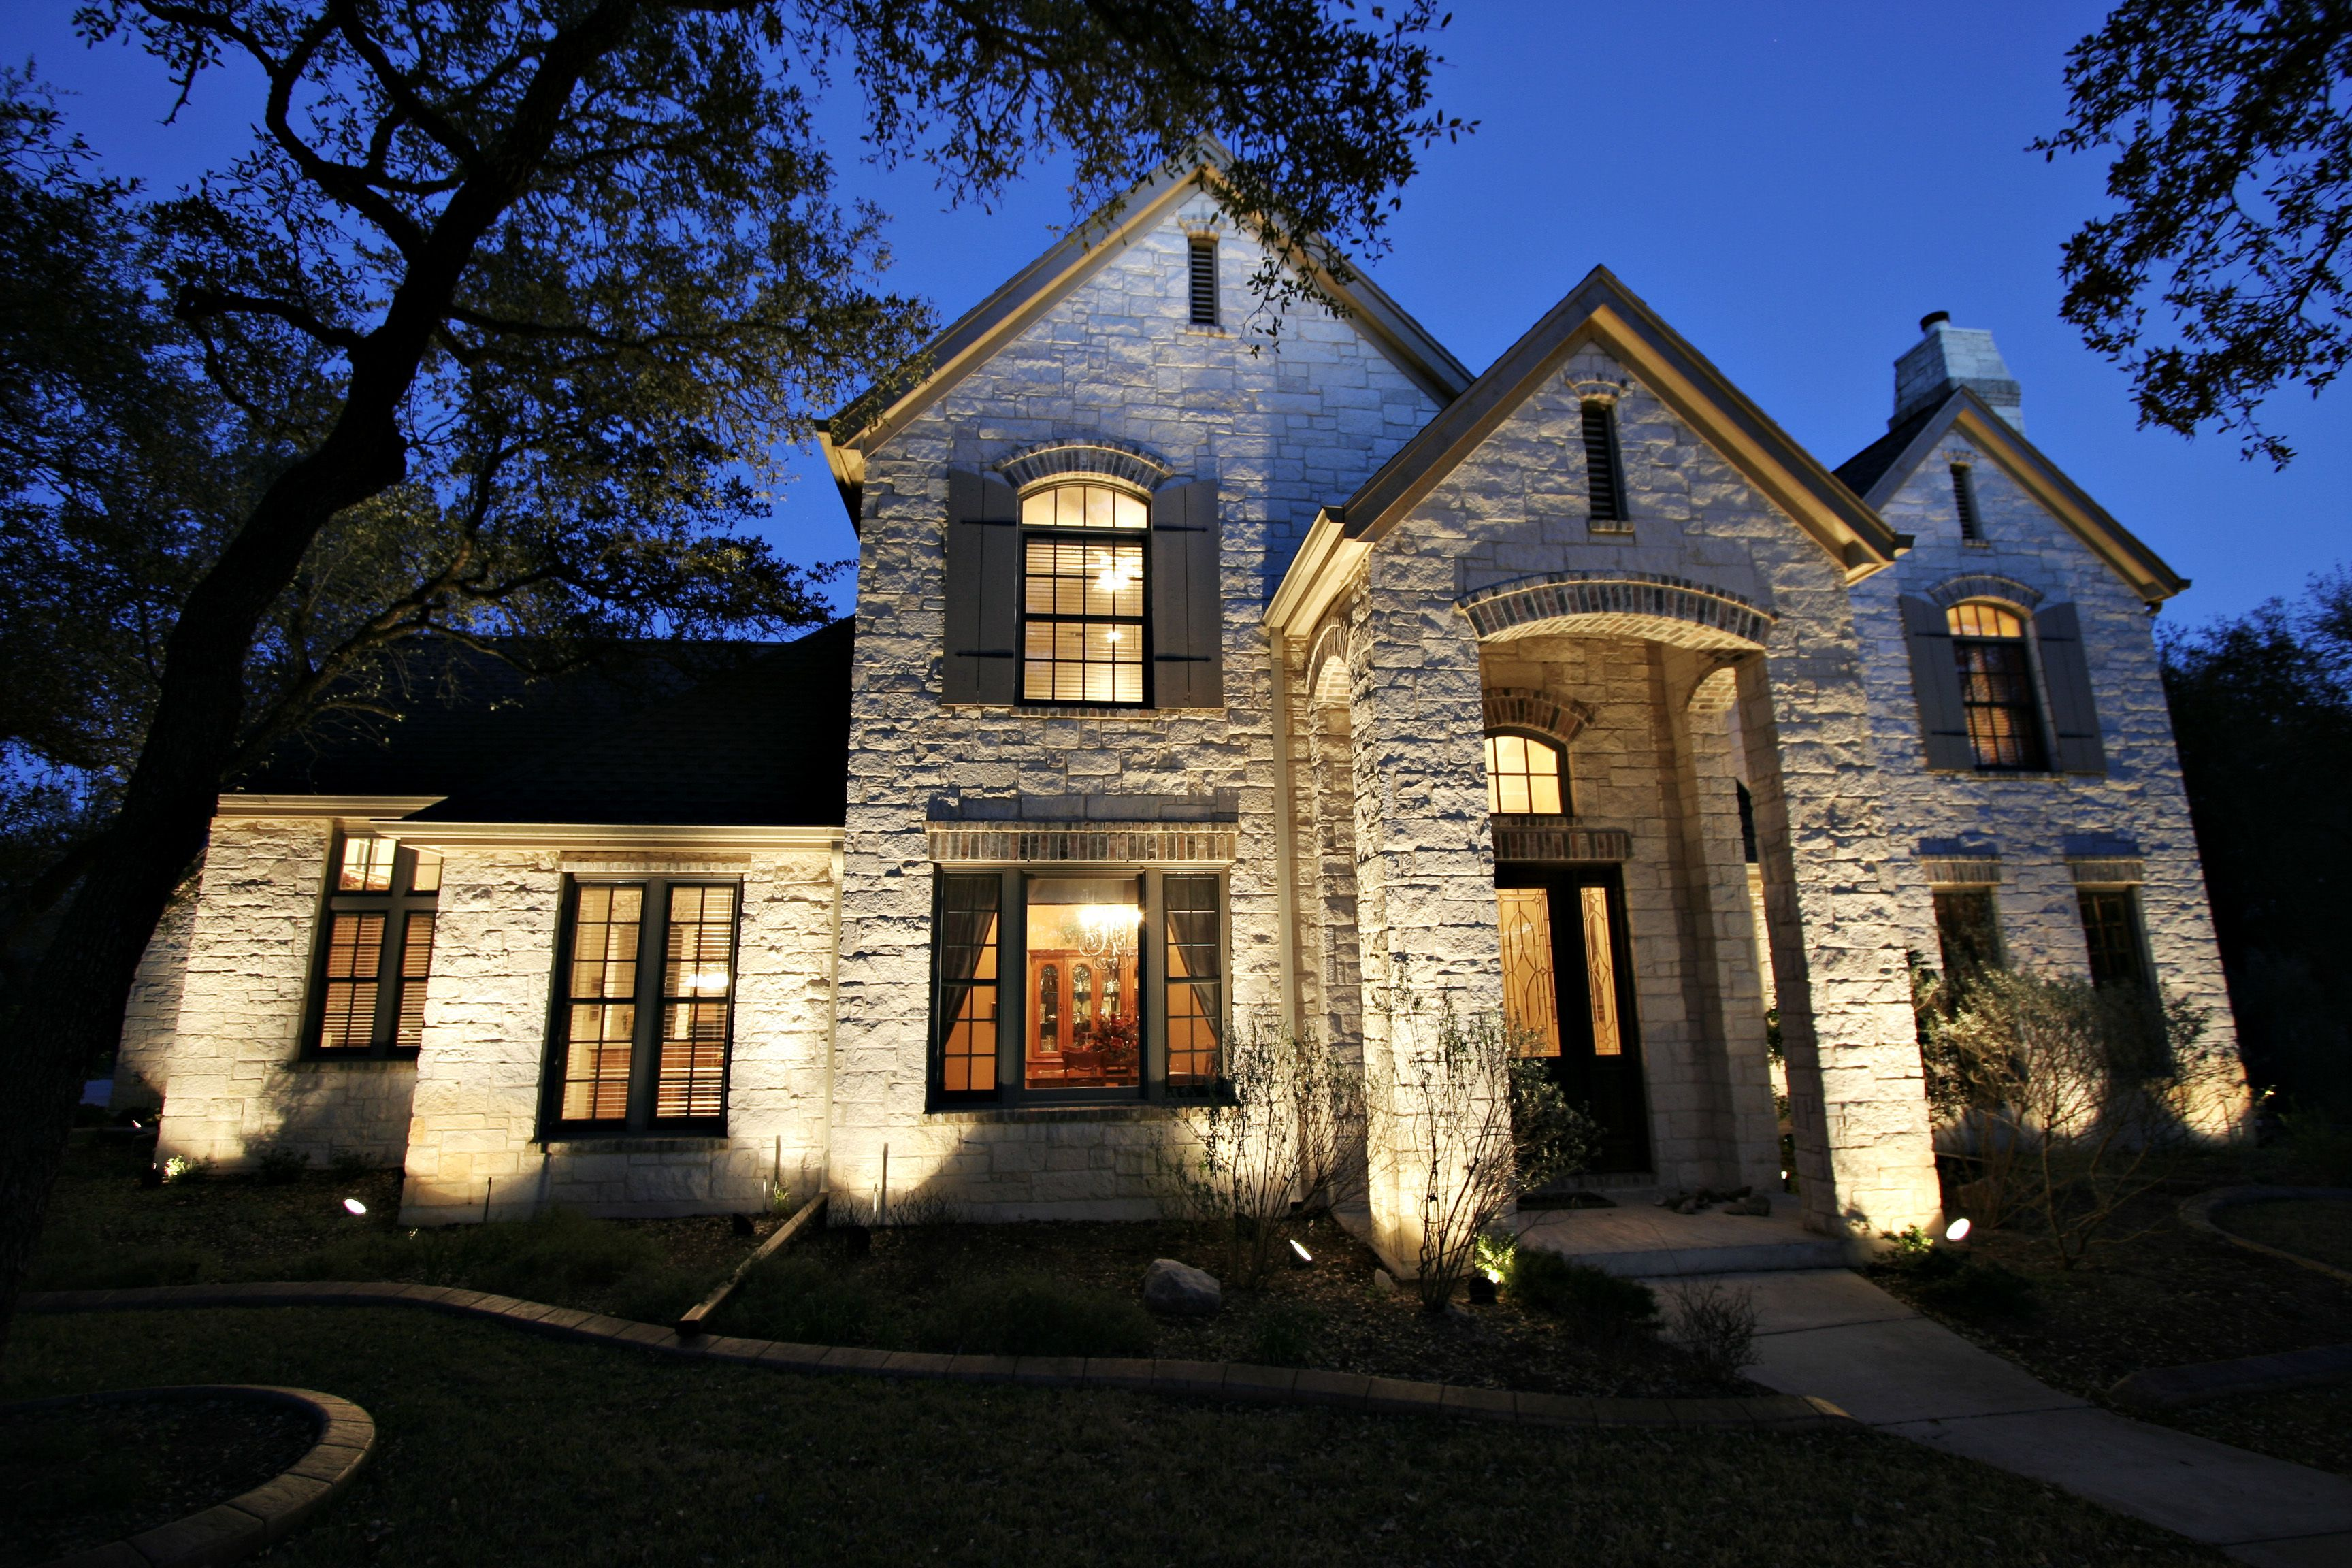 Outdoor Home Lighting Custom Nestors Lighting And Landscaping  Nestors Lighting And Landscaping